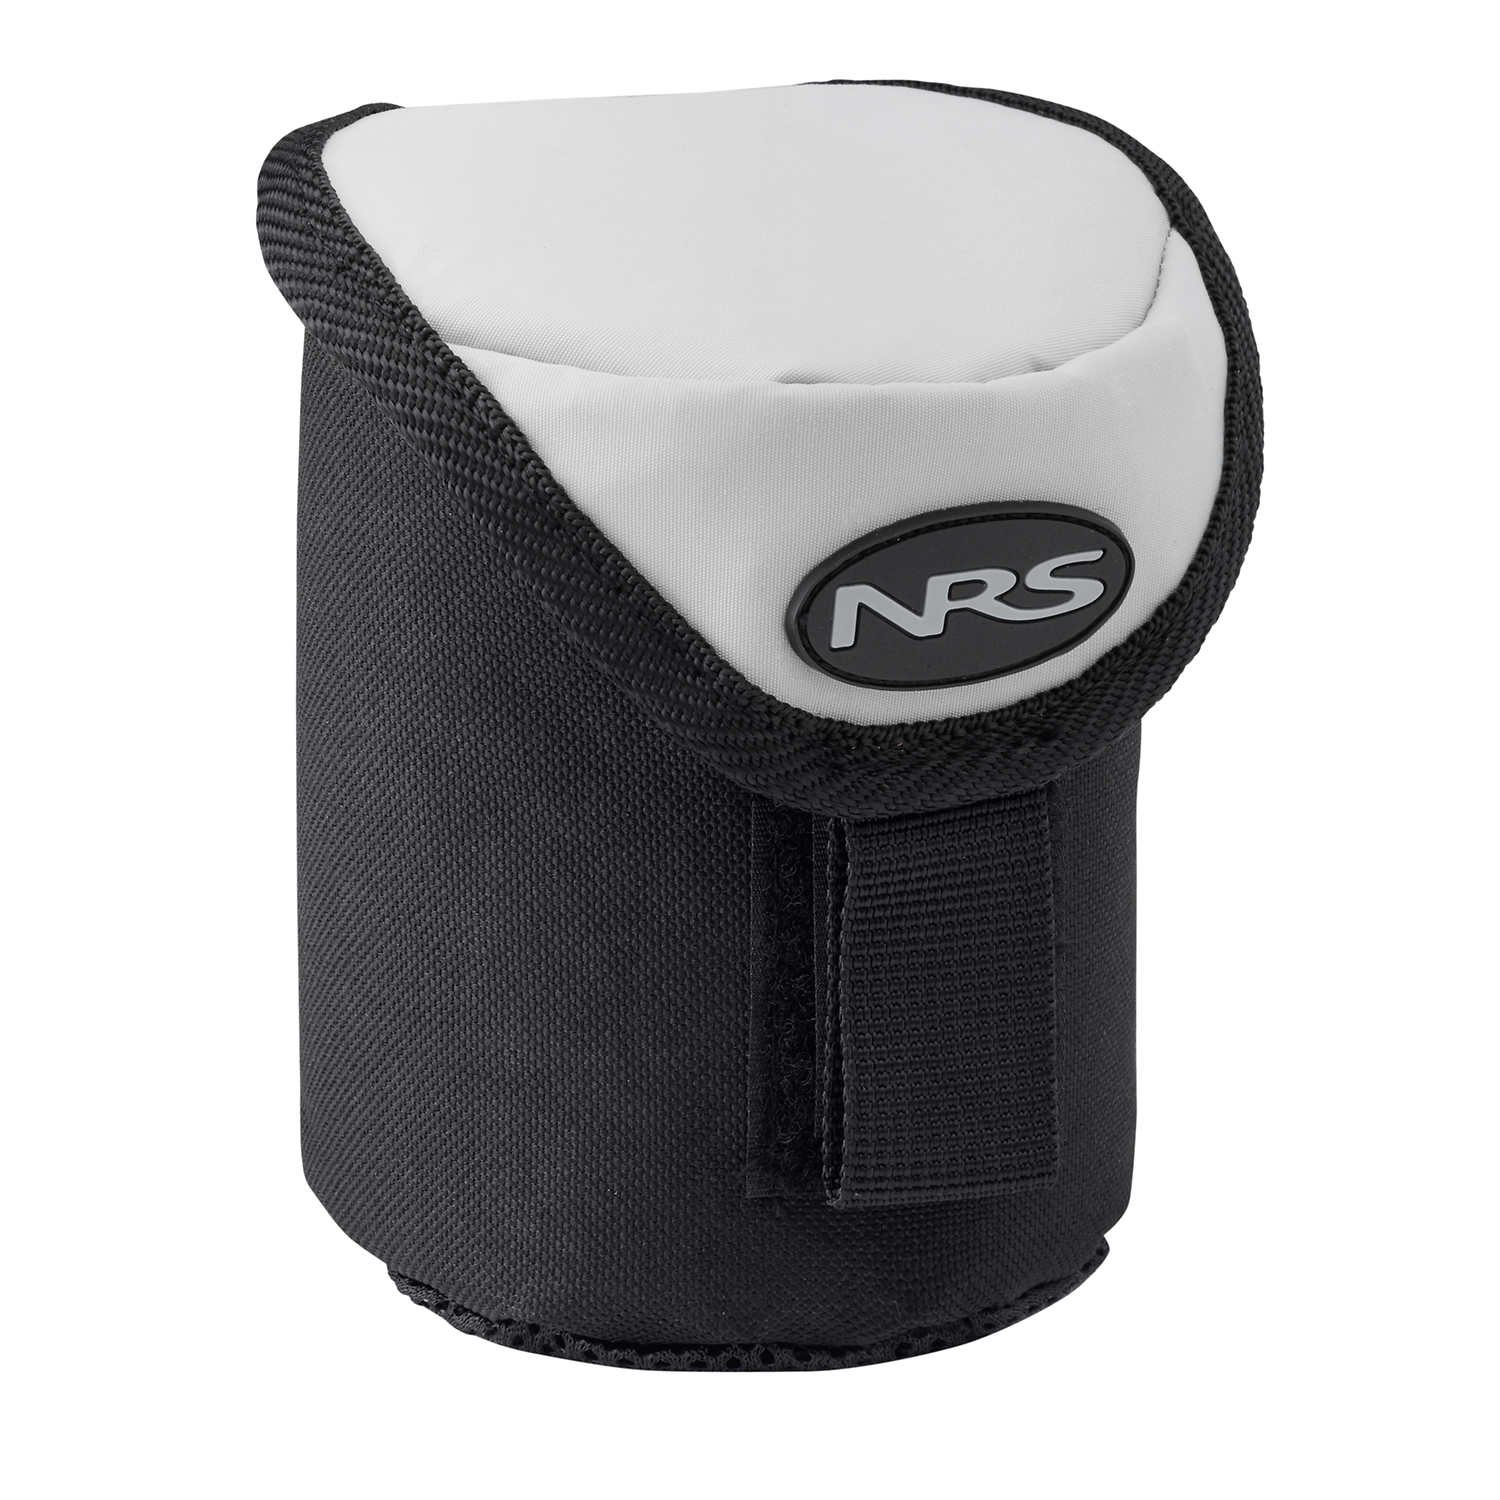 NRS Spare Drink Holder